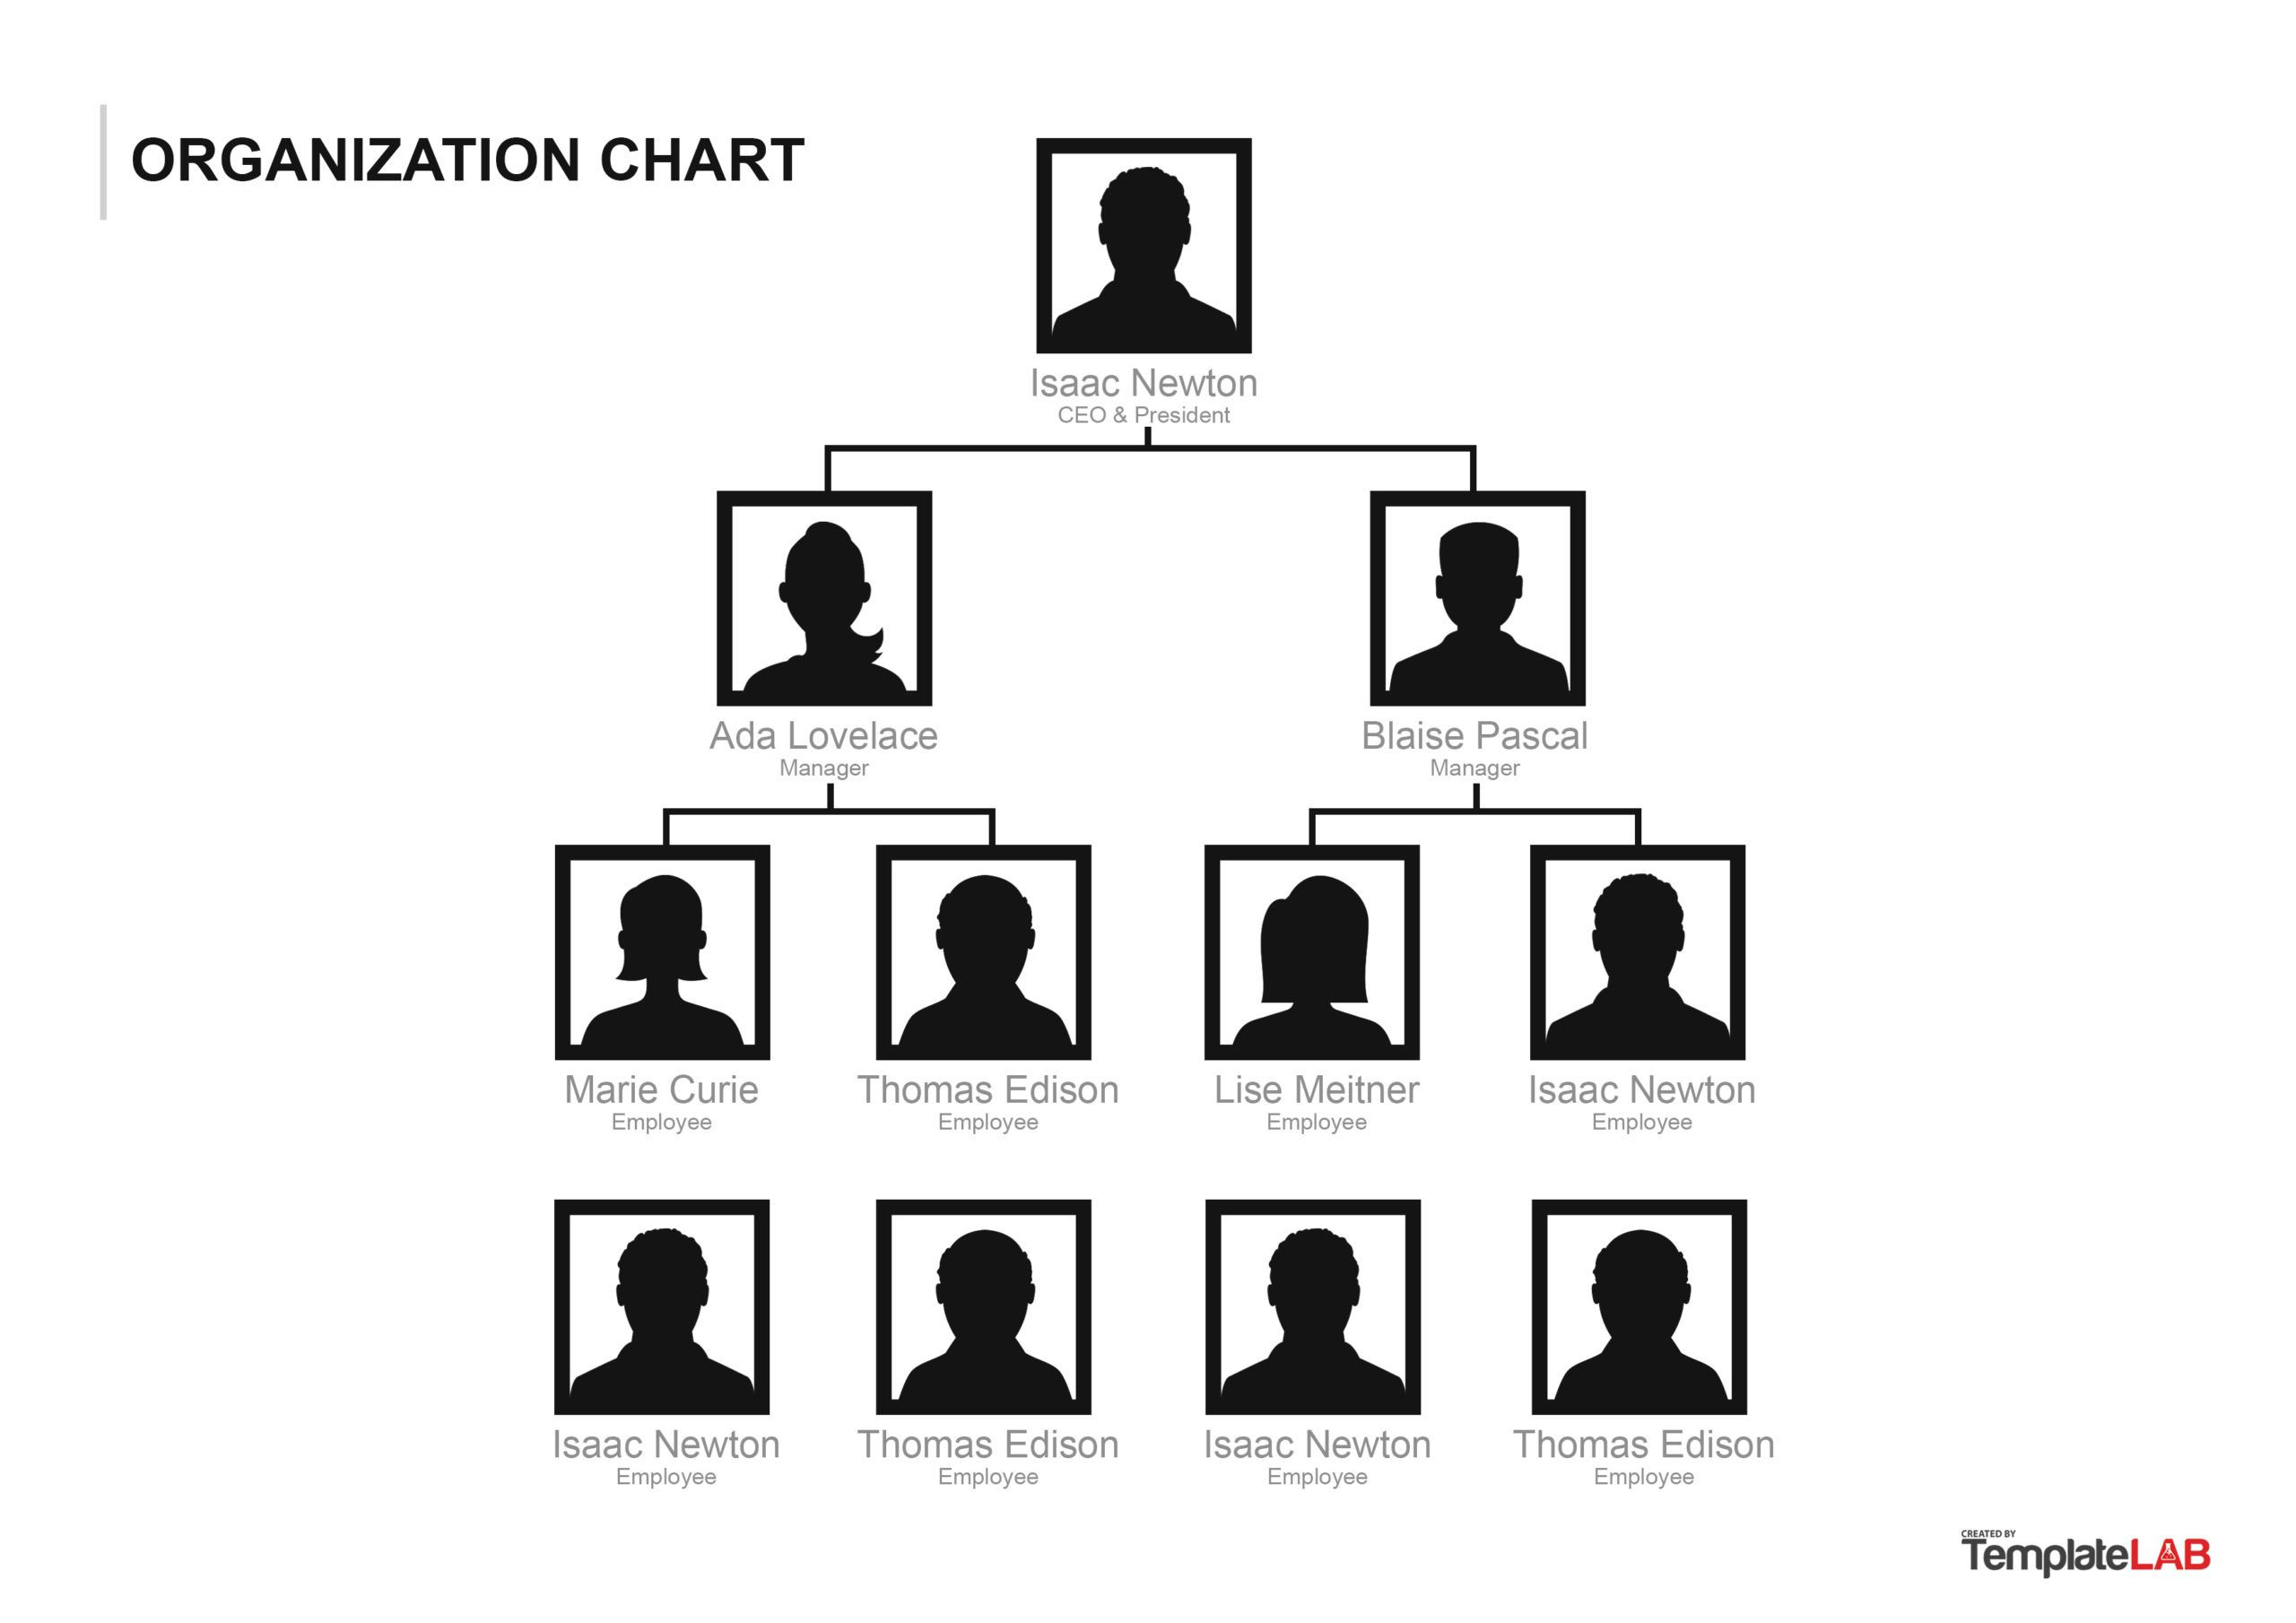 008 Staggering Organizational Chart Template Excel Download Free Image  OrgFull